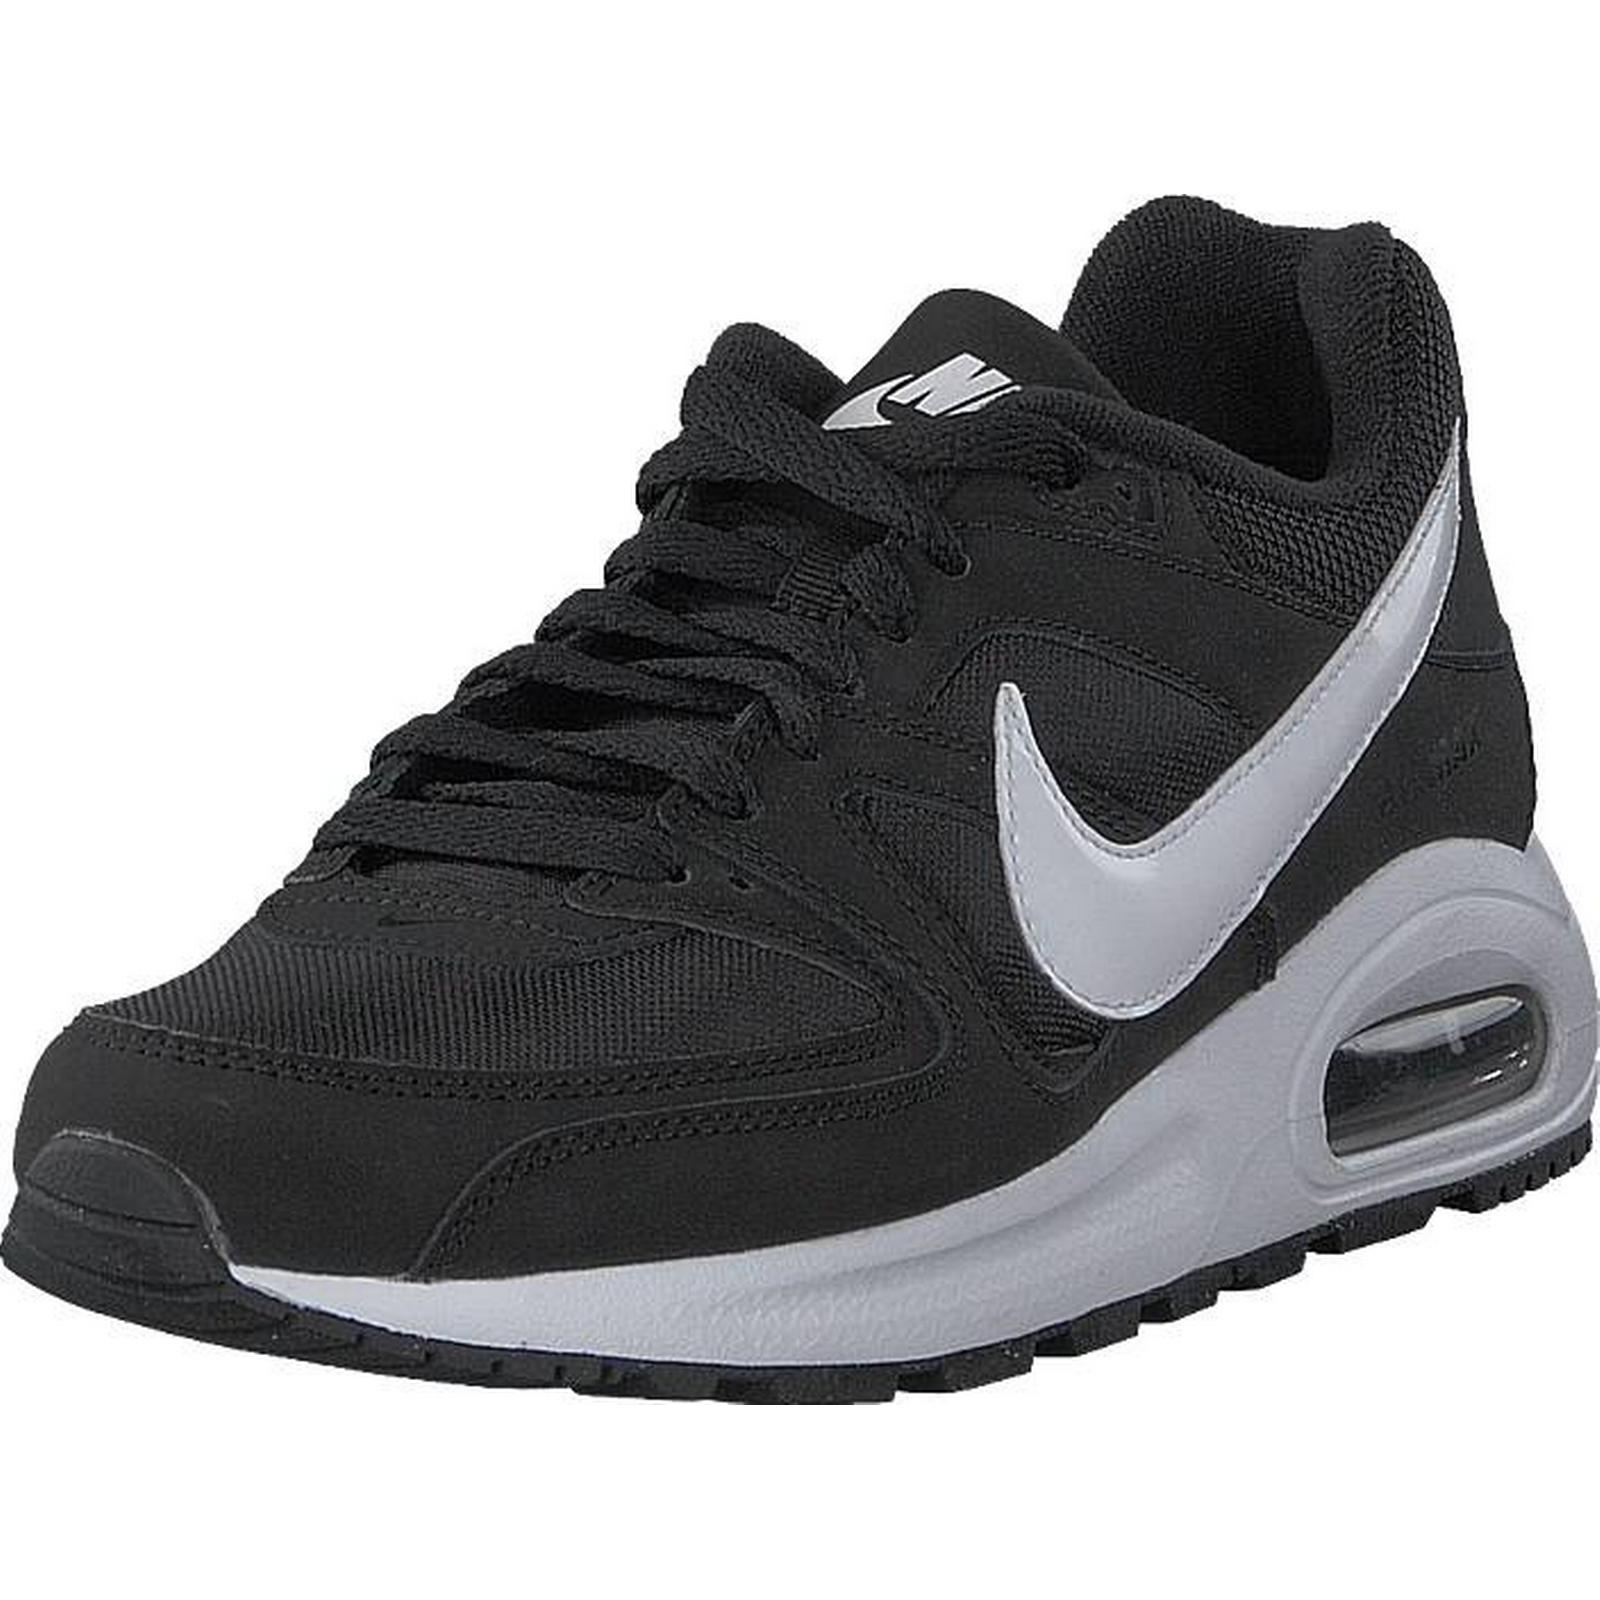 Nike Nike Nike Air Max Command Flex Black/white-white, Shoes, Trainers & Sport Shoes , Trainers, Black, Unisex, 36 935ef0